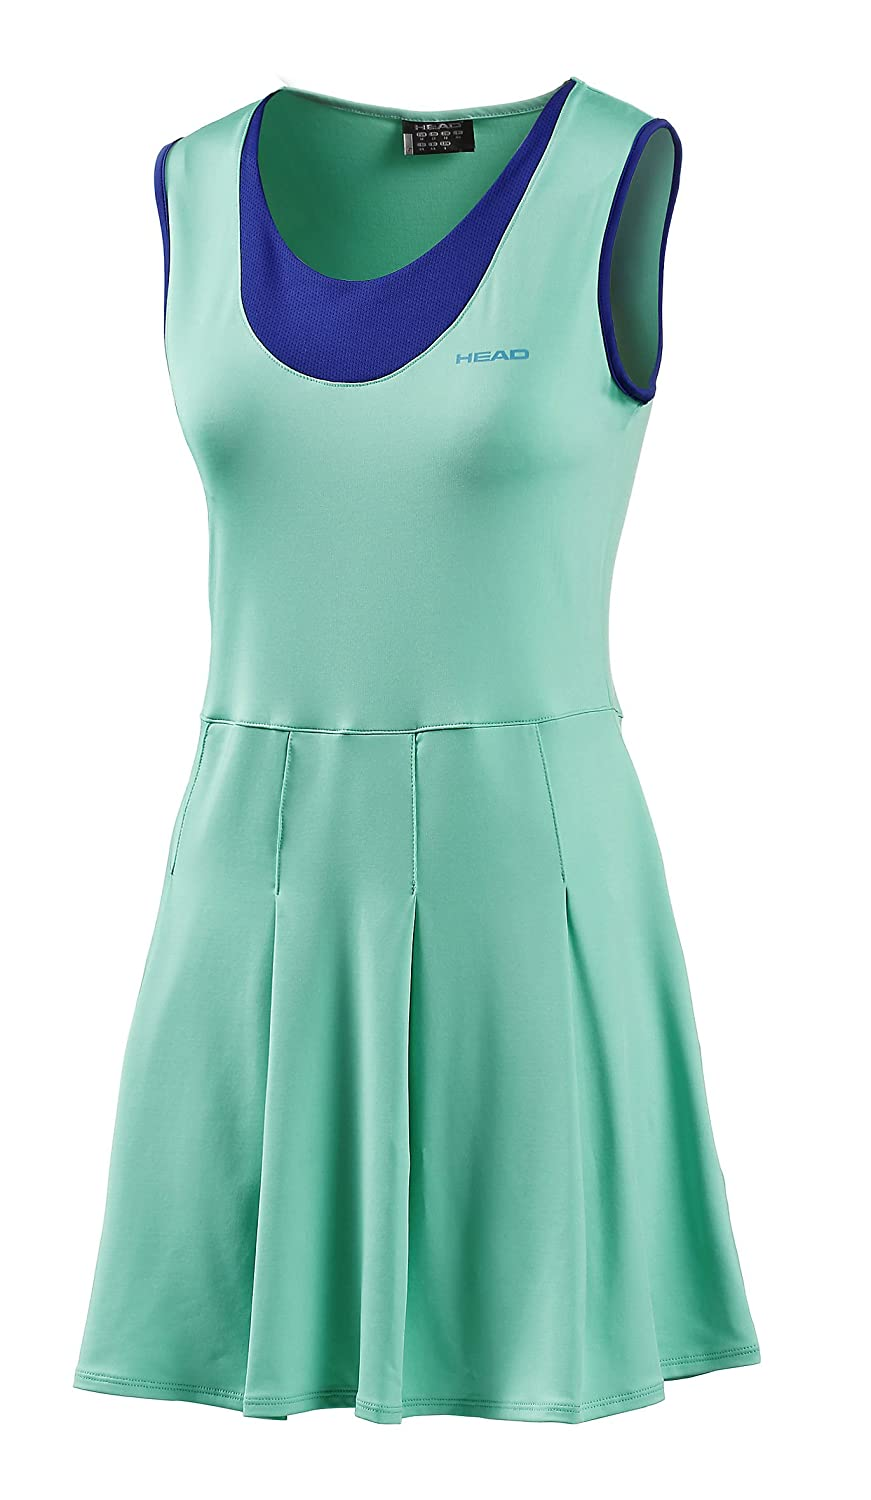 Head - Vestido pádel dual, talla xs, color azul / verde: Amazon.es ...